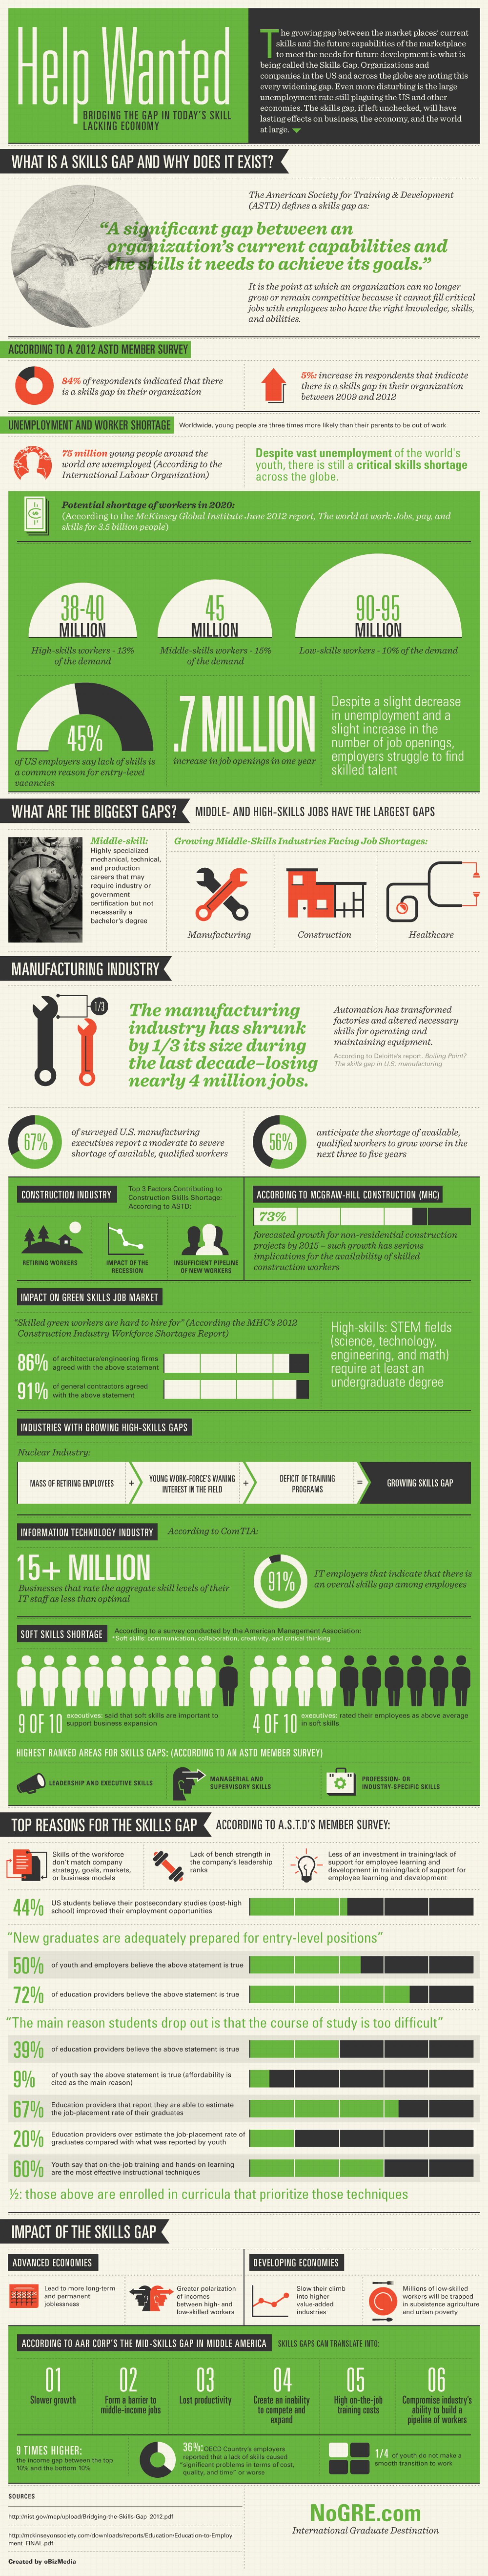 Help Wanted: Bridging The Gap in Today's Skill Lacking Economy  Infographic